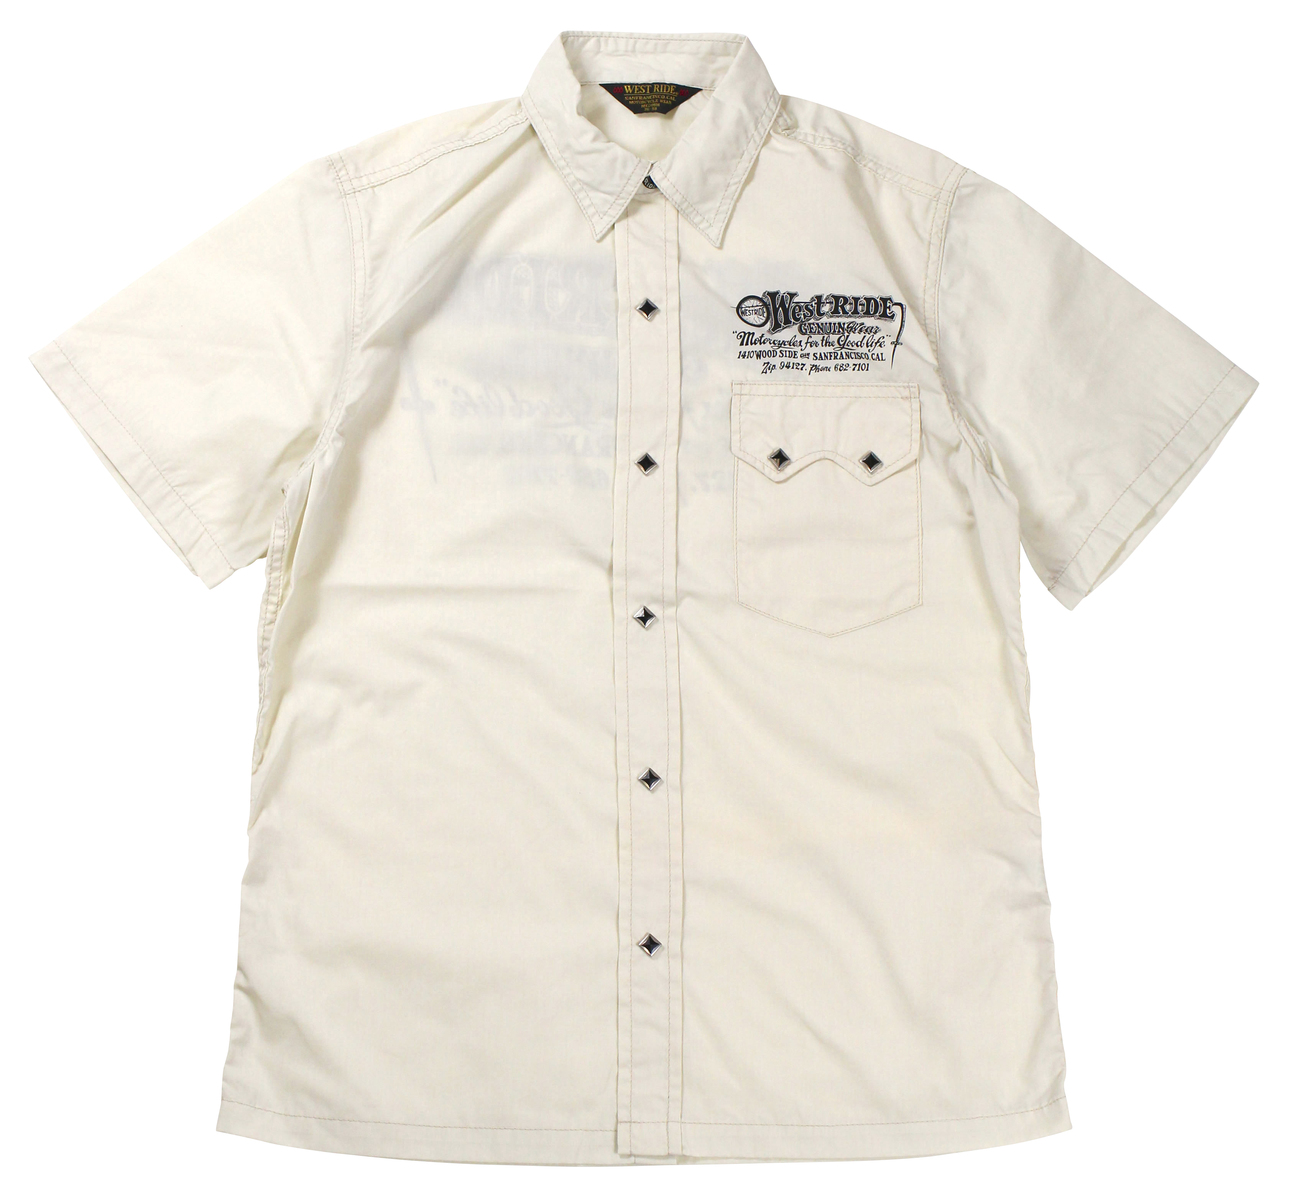 WESTRIDE [-SNAP WORK SHIRTS- CRM size.34,36,38,40,42,44]